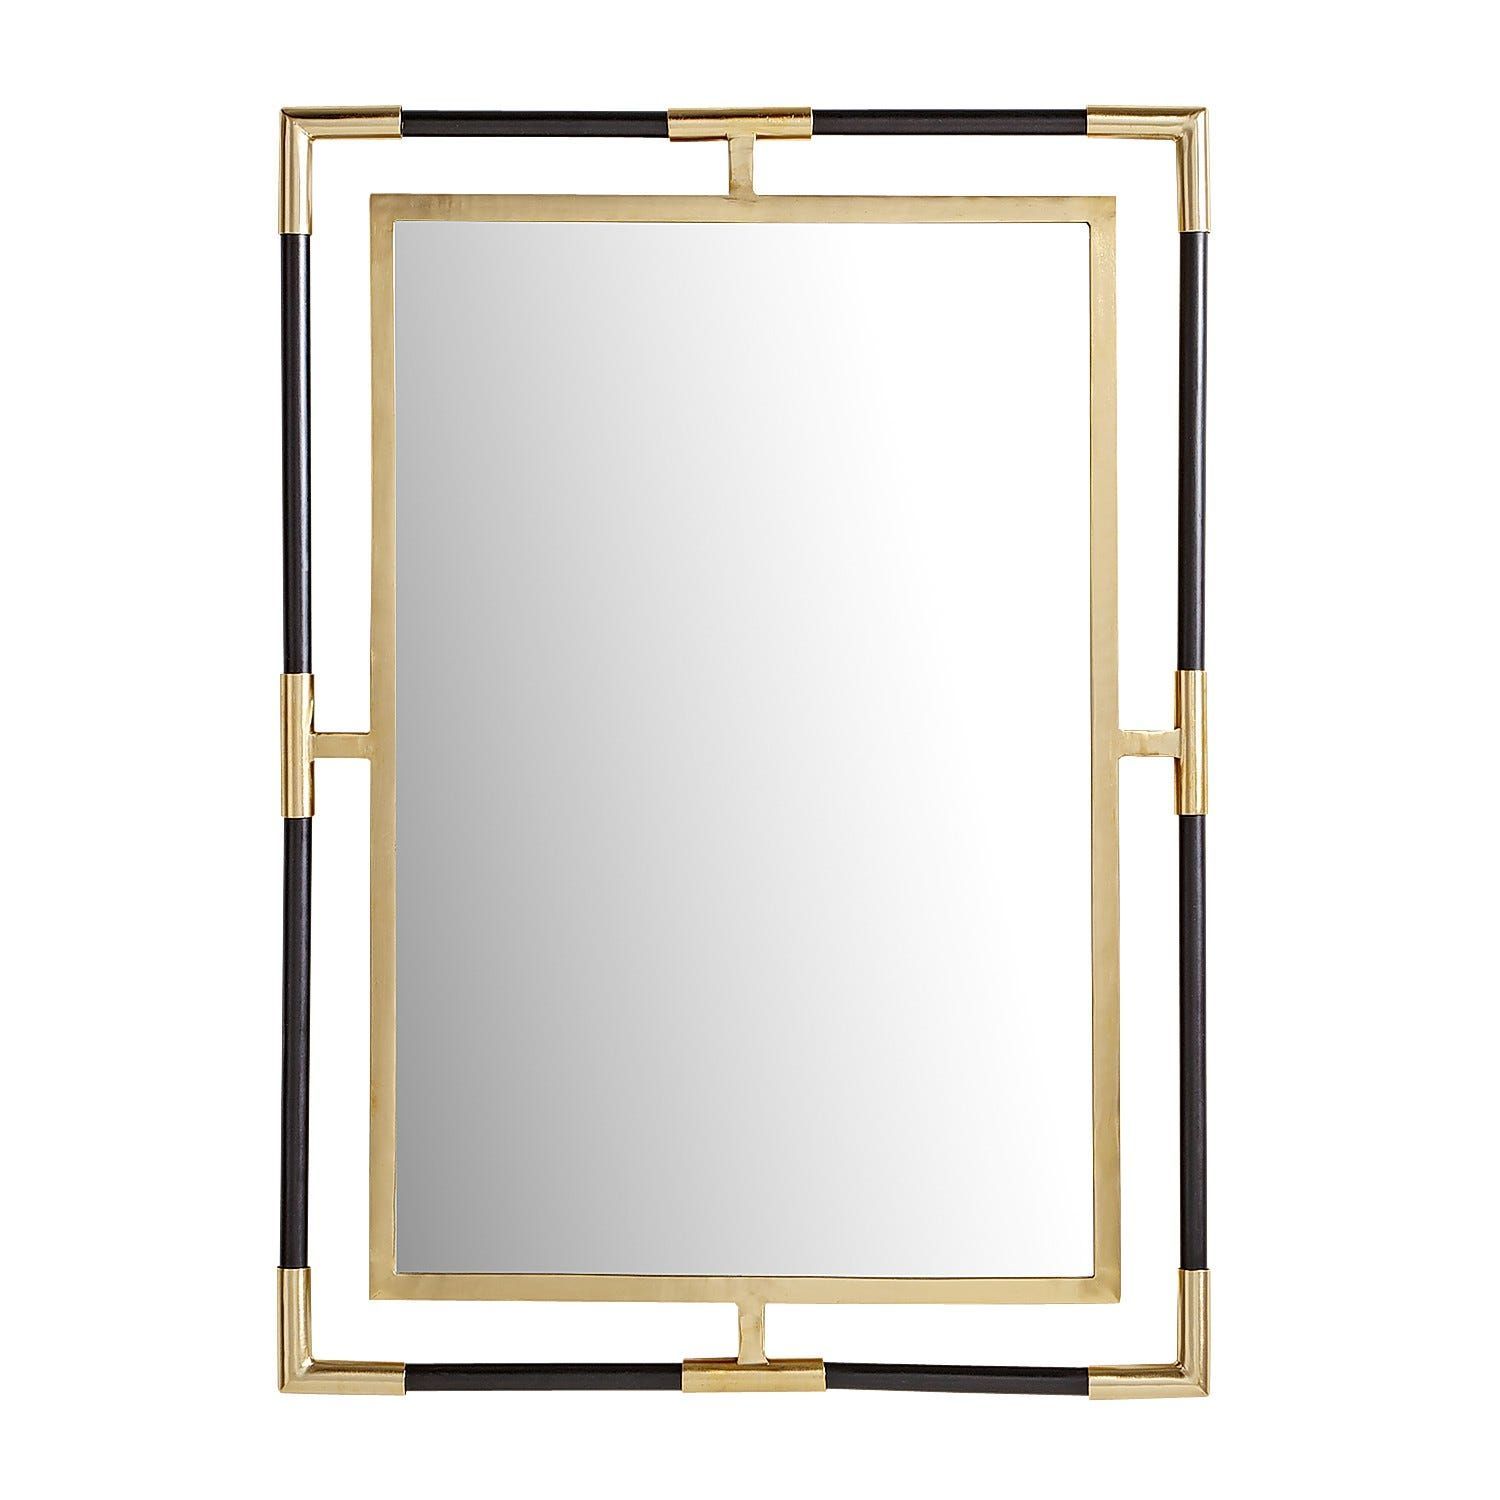 Black Gold Open Frame Mirror Pier 1 Black And Gold Bathroom Mirror Frames Powder Room Mirror [ 1500 x 1500 Pixel ]